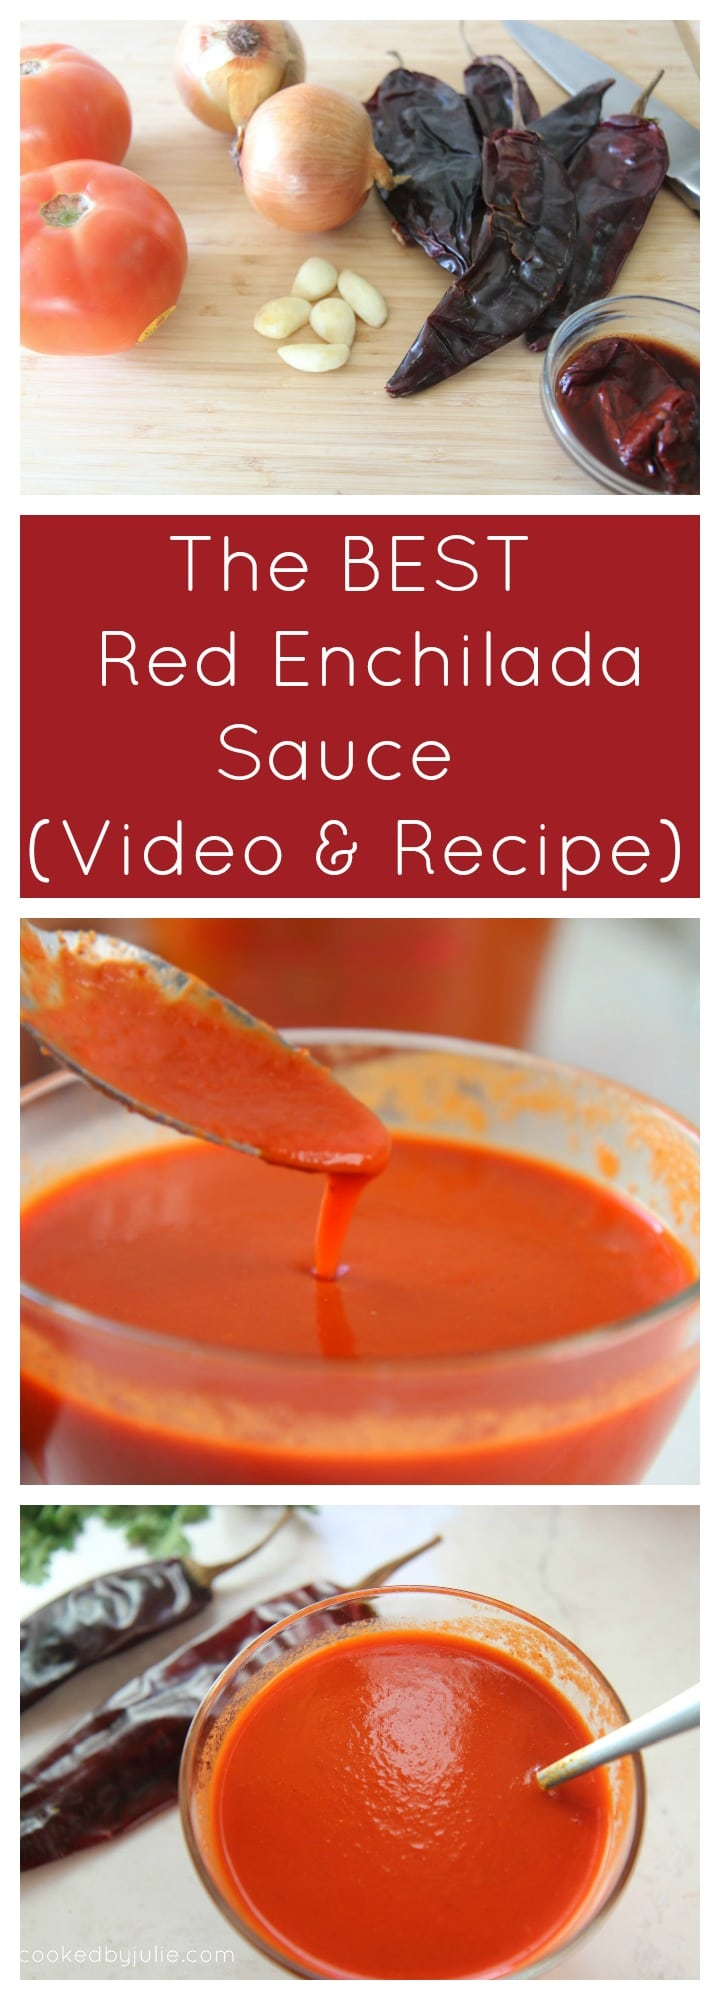 The Best Homemade Red Enchilada Sauce   Recipe and Video from Cooked By Julie